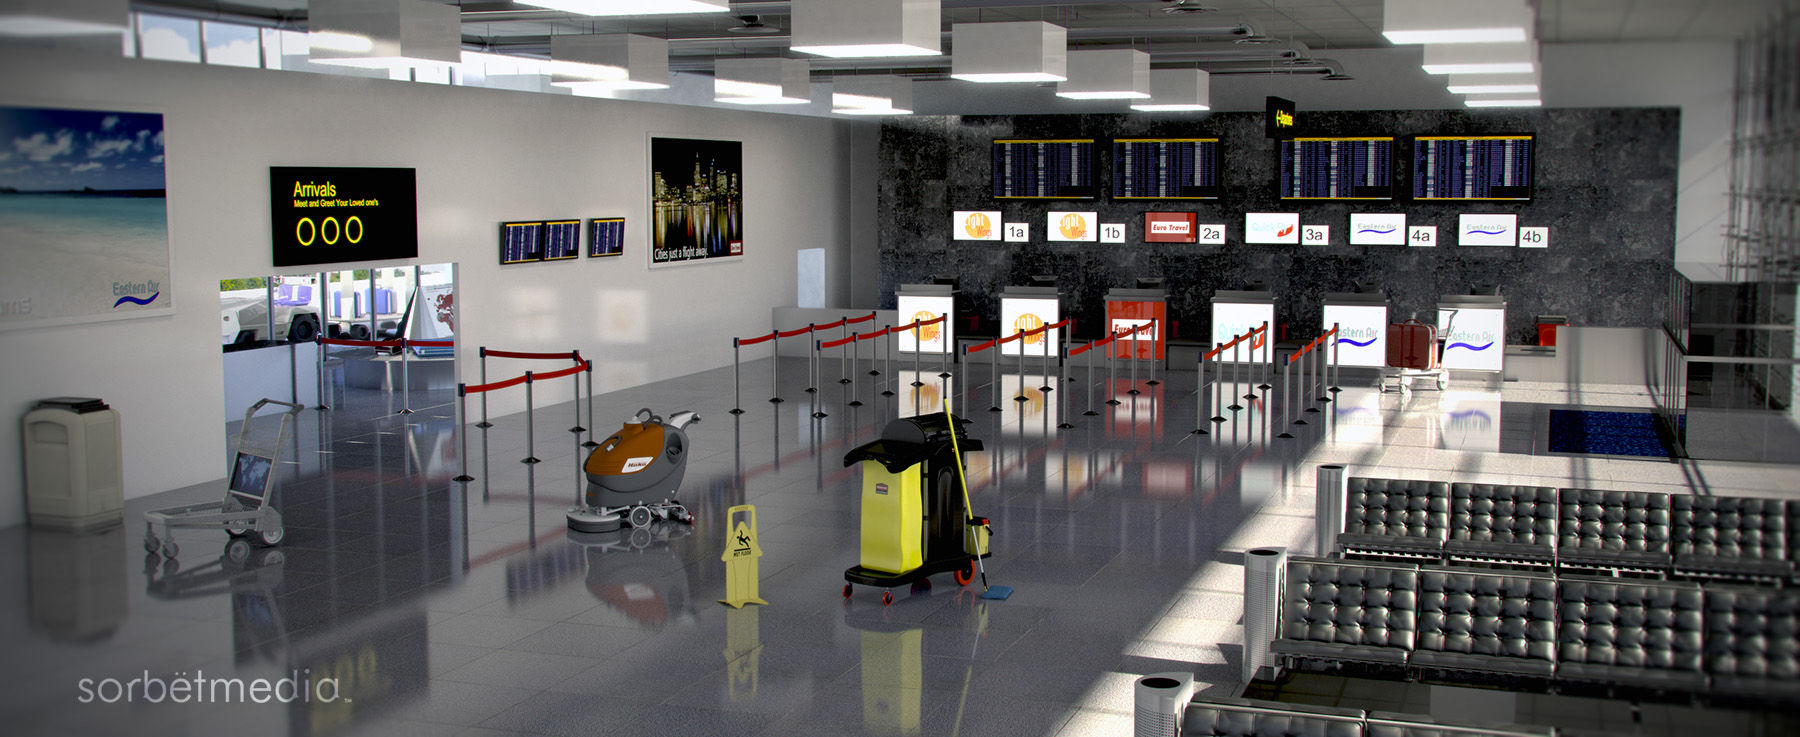 3d-airport-checkin-concept